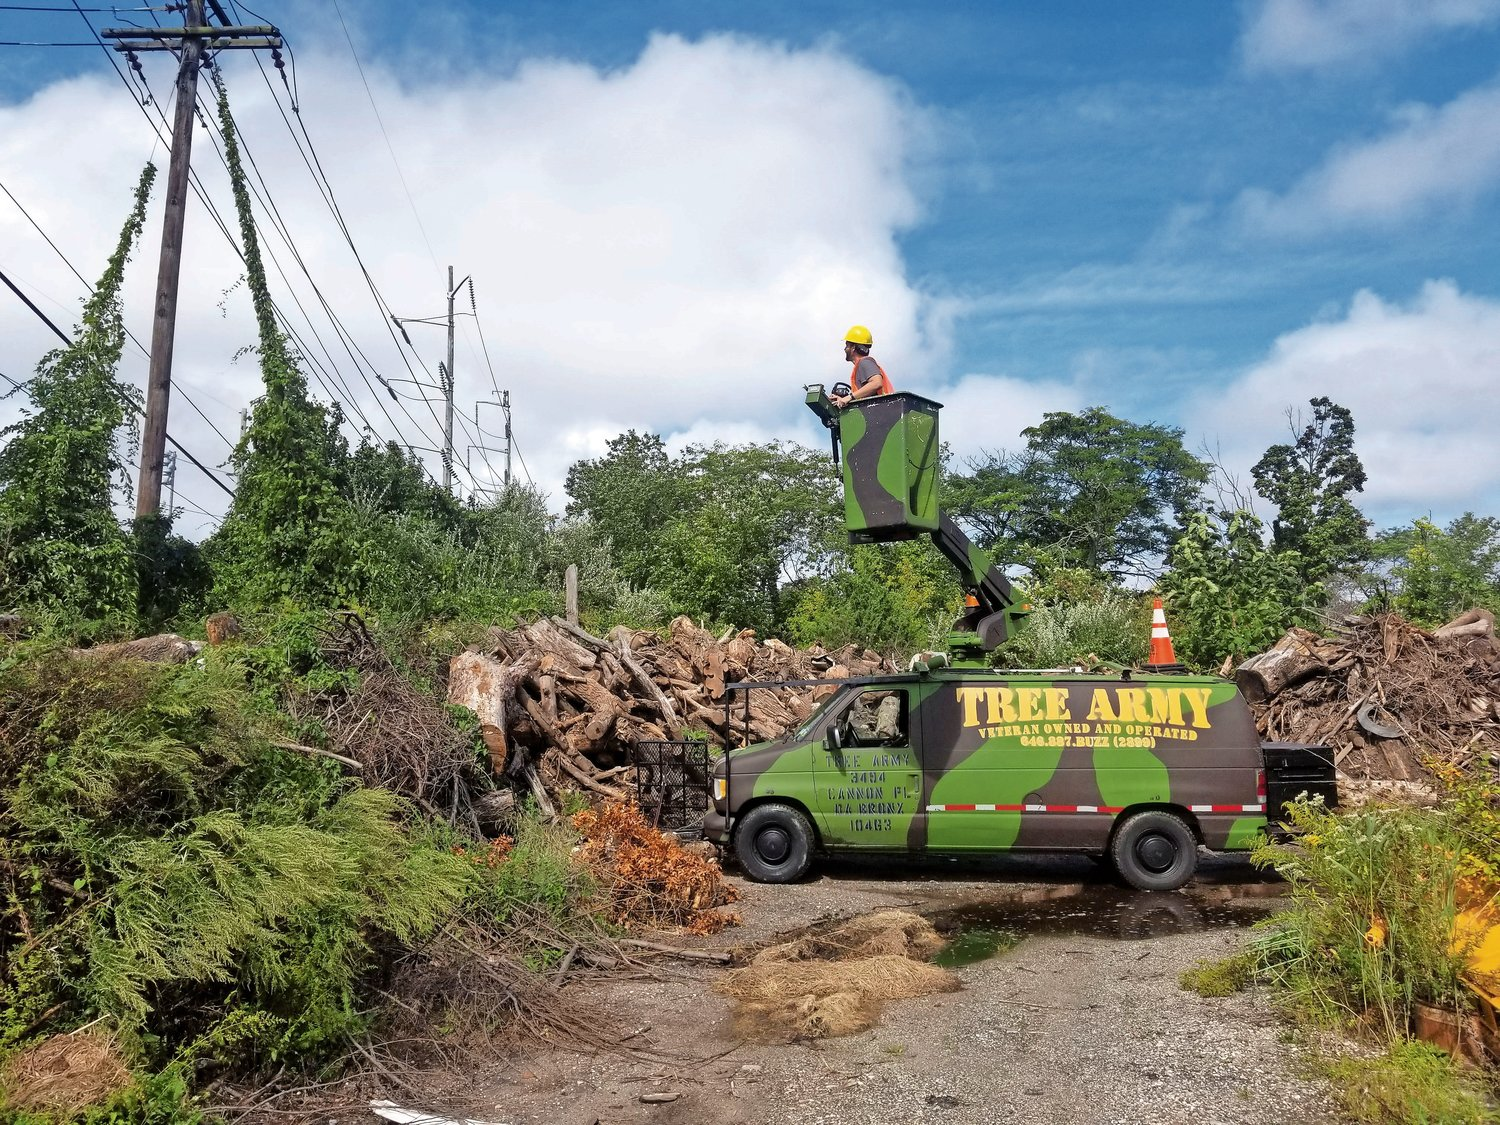 Tree Army, a company owned and operated by veterans, specializes in the removal of unwanted trees. During the holiday season, they also donate the use of their vehicles for the Marine Corps' Toys for Tots program.